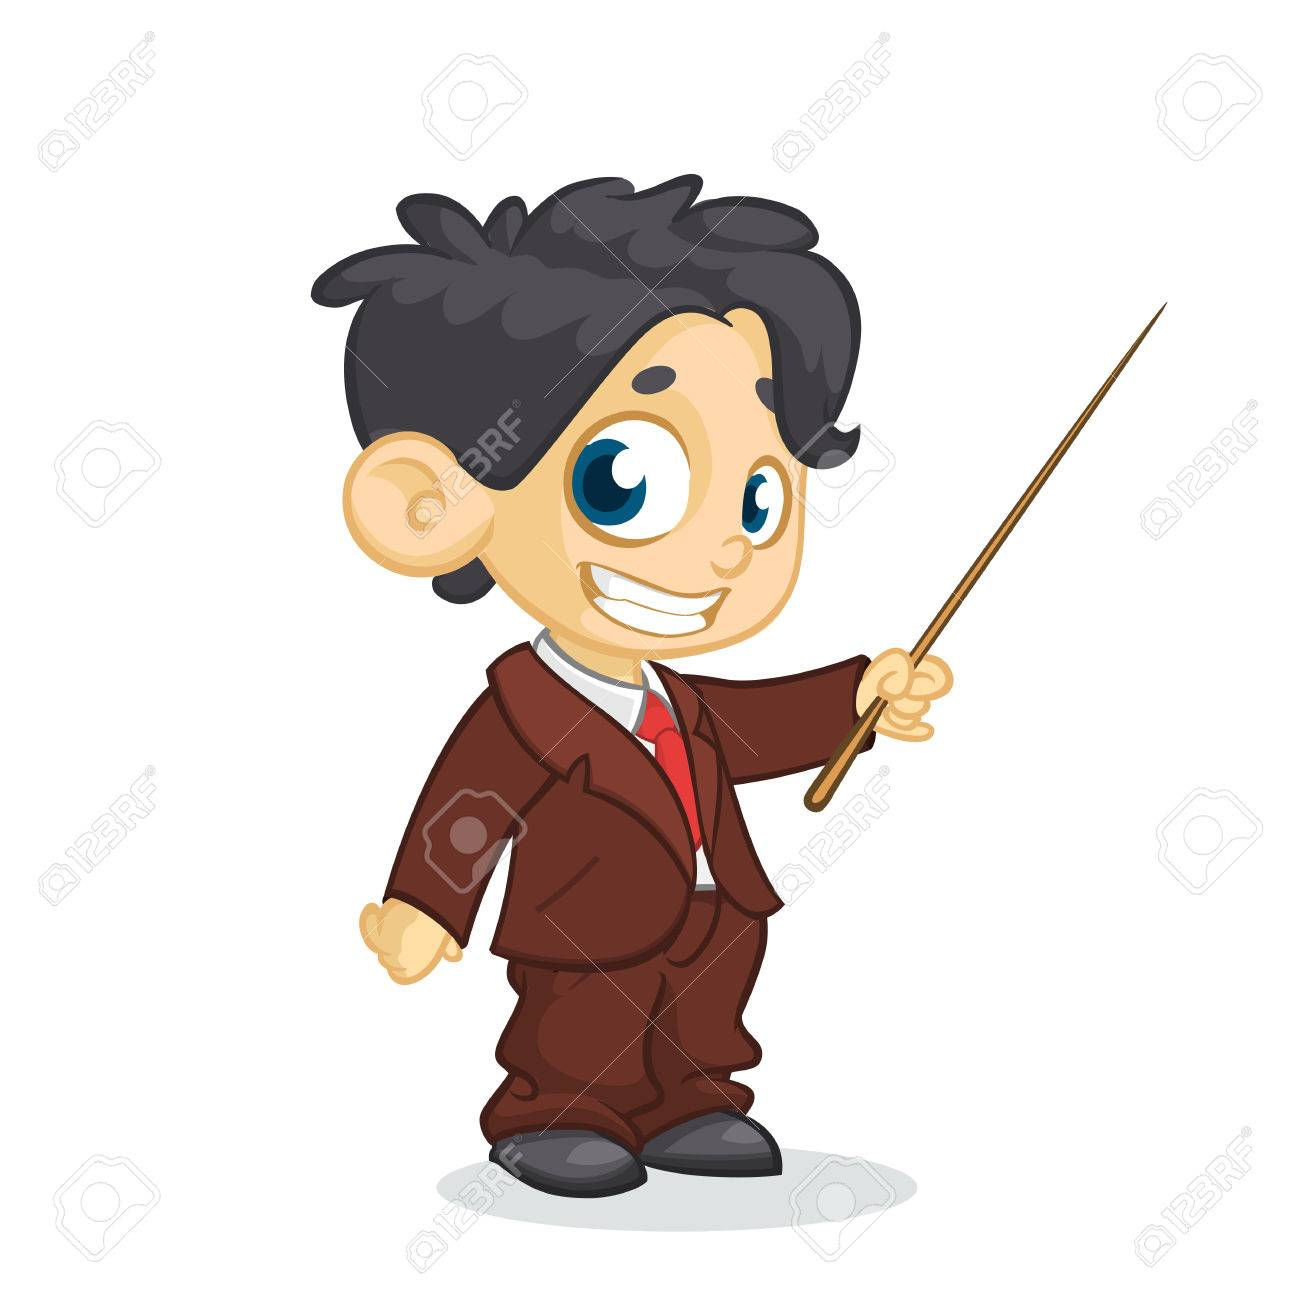 Cartoon Little Cute Boy Character Presenting With A Pointer